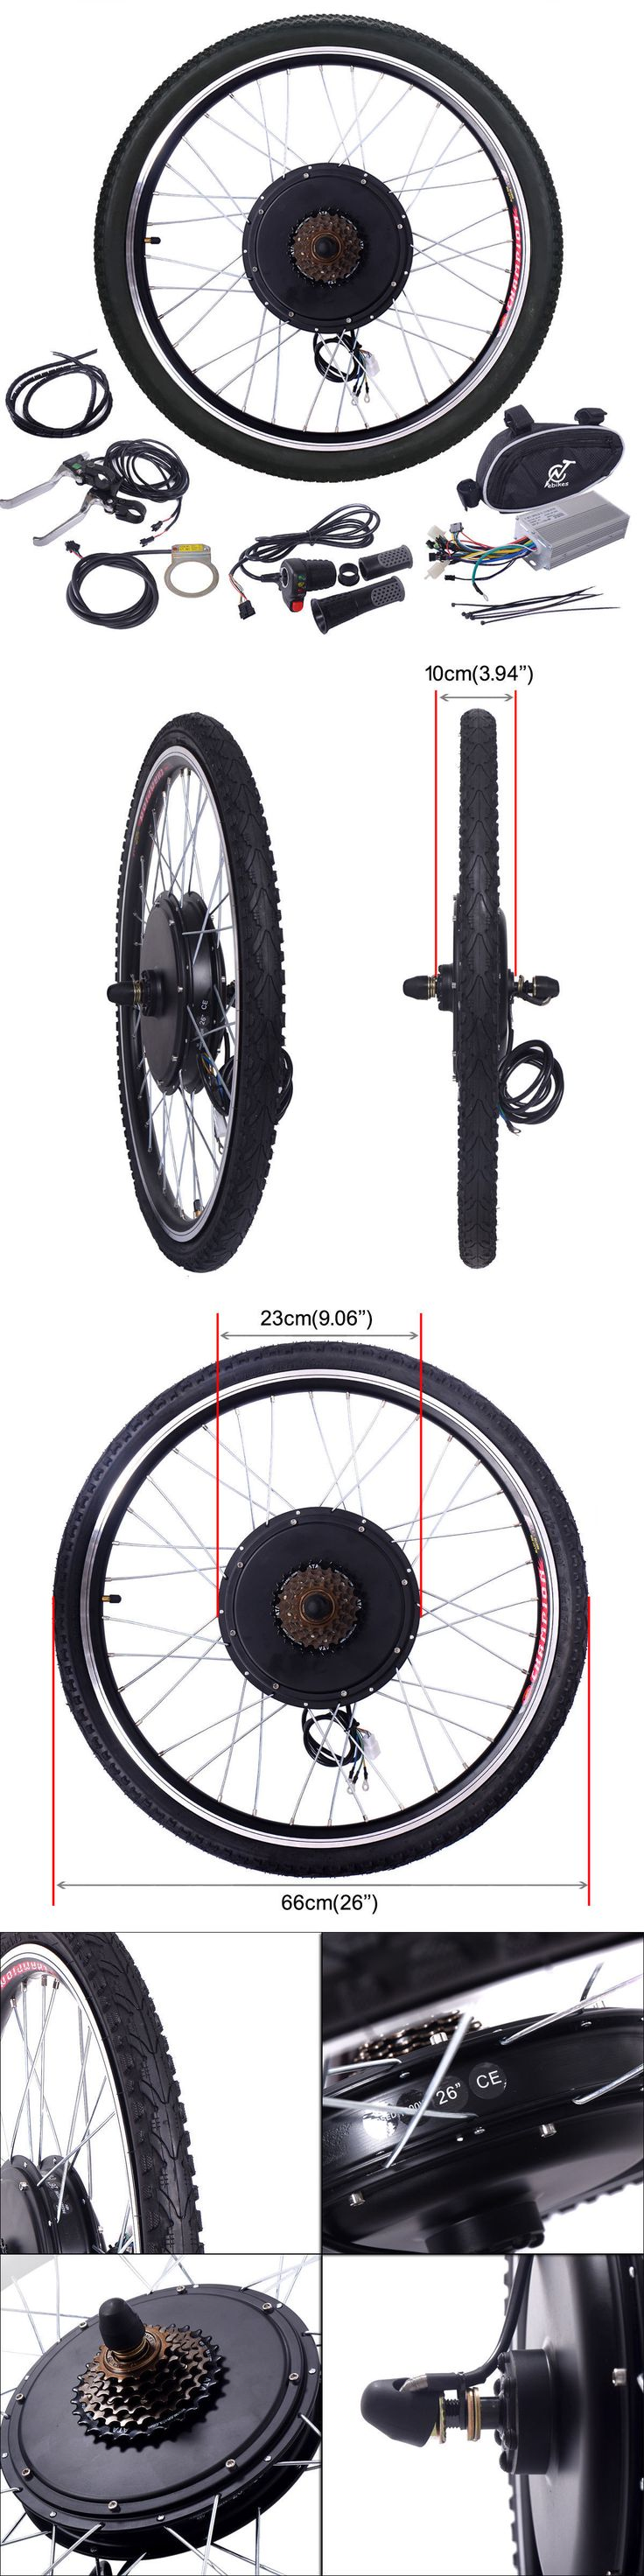 Electric Bicycles 74469: 26 48V 1000W Electric Bicycle Cycle E Bikeconversion Kit Hub Motor Rear Wheel -> BUY IT NOW ONLY: $150.59 on eBay!